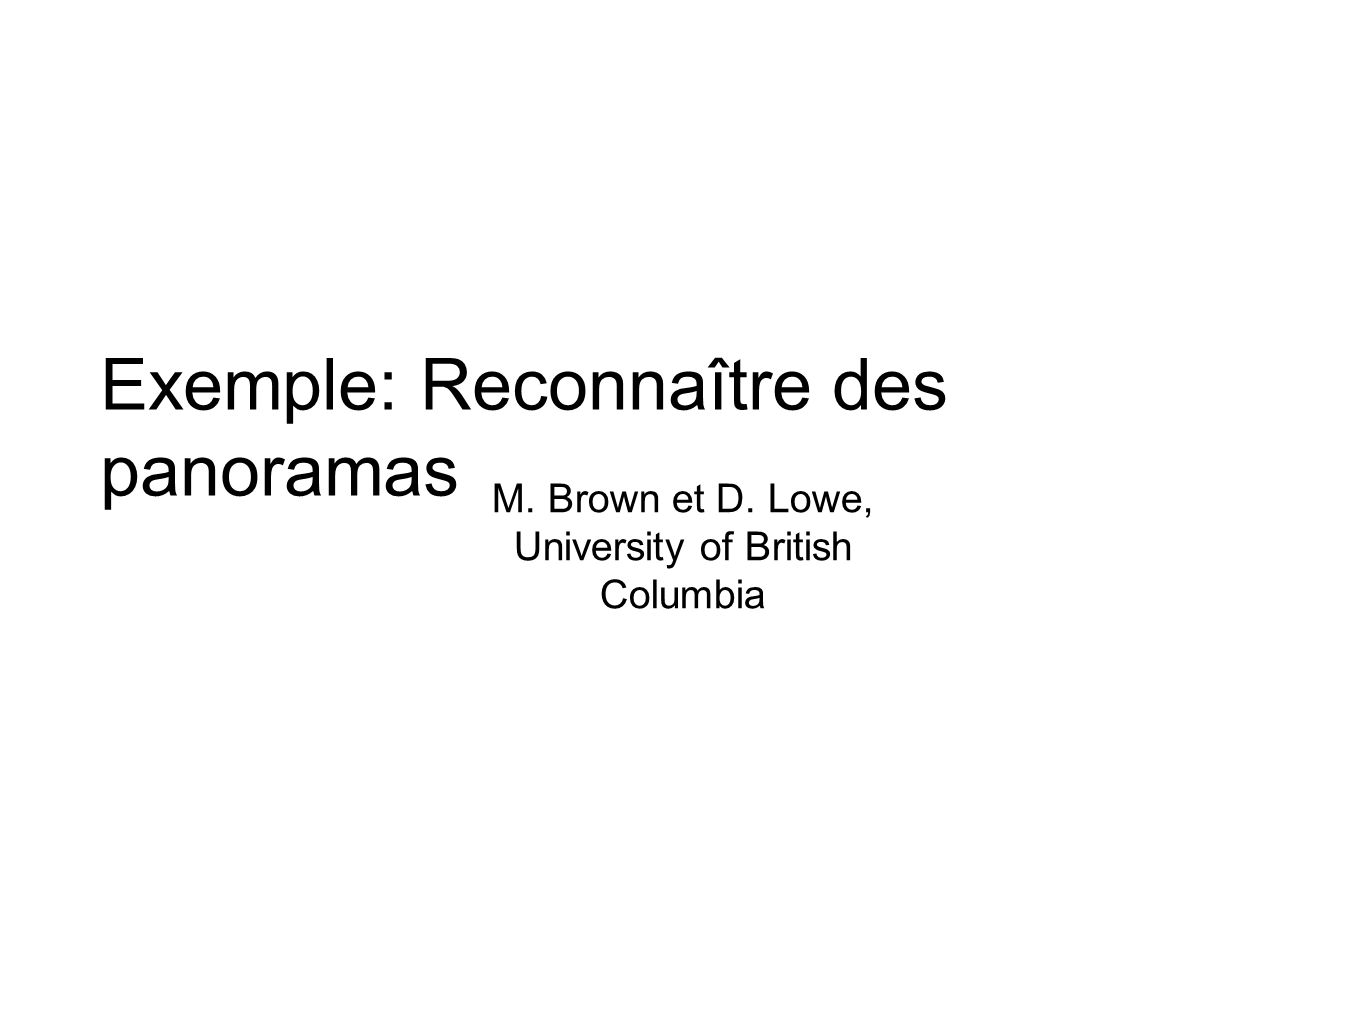 Exemple: Reconnaître des panoramas M. Brown et D. Lowe, University of British Columbia